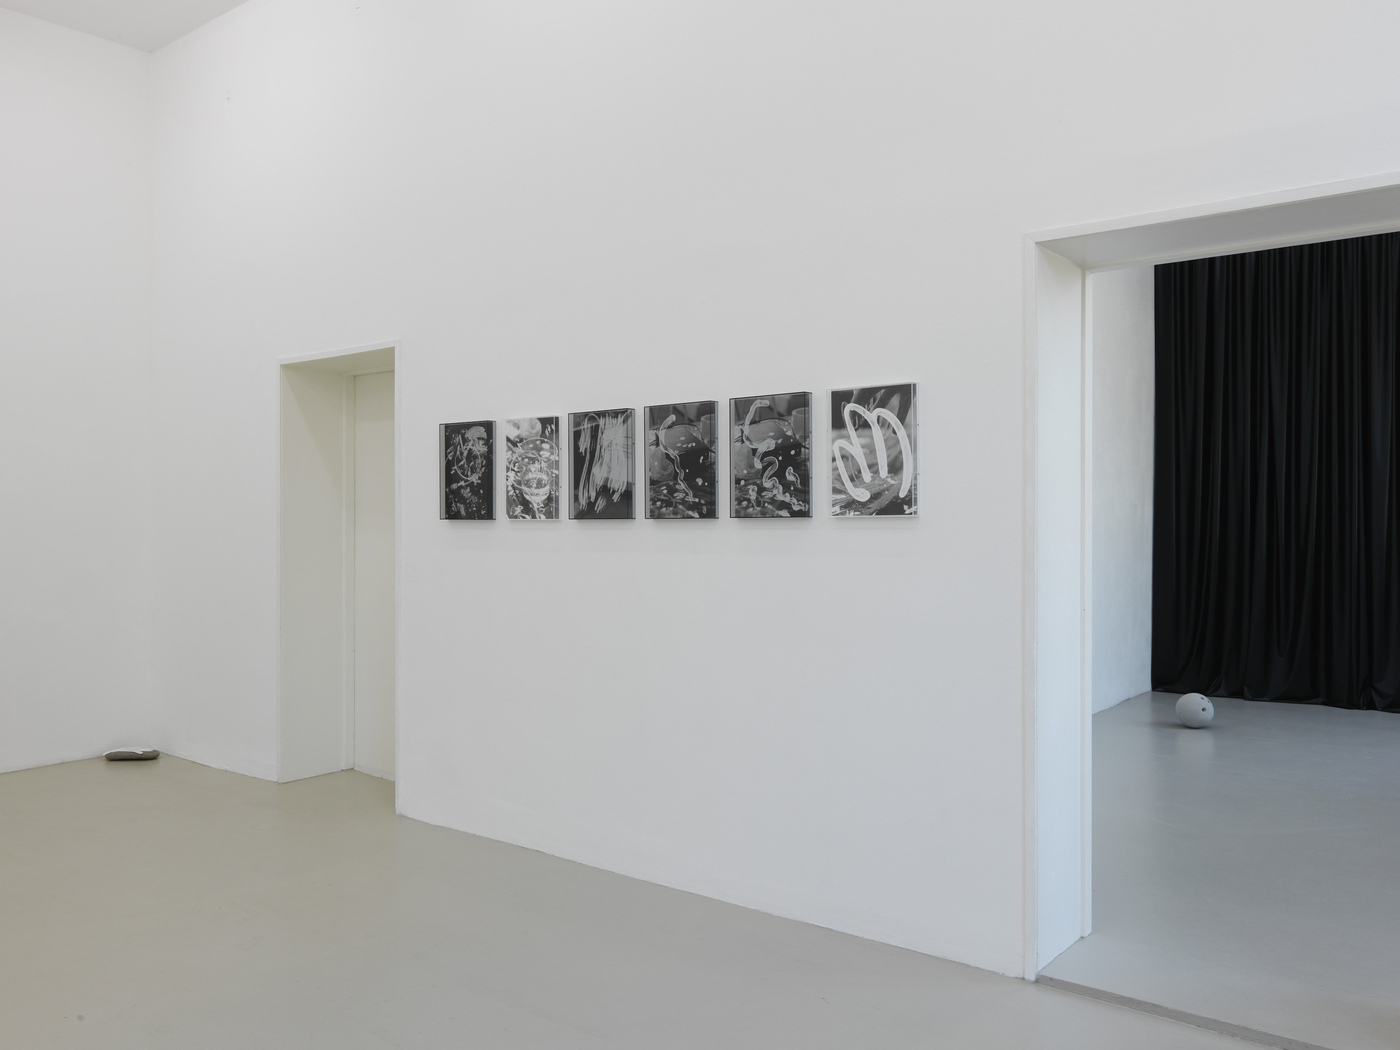 17_Gestures of Tomorrow_Installation view